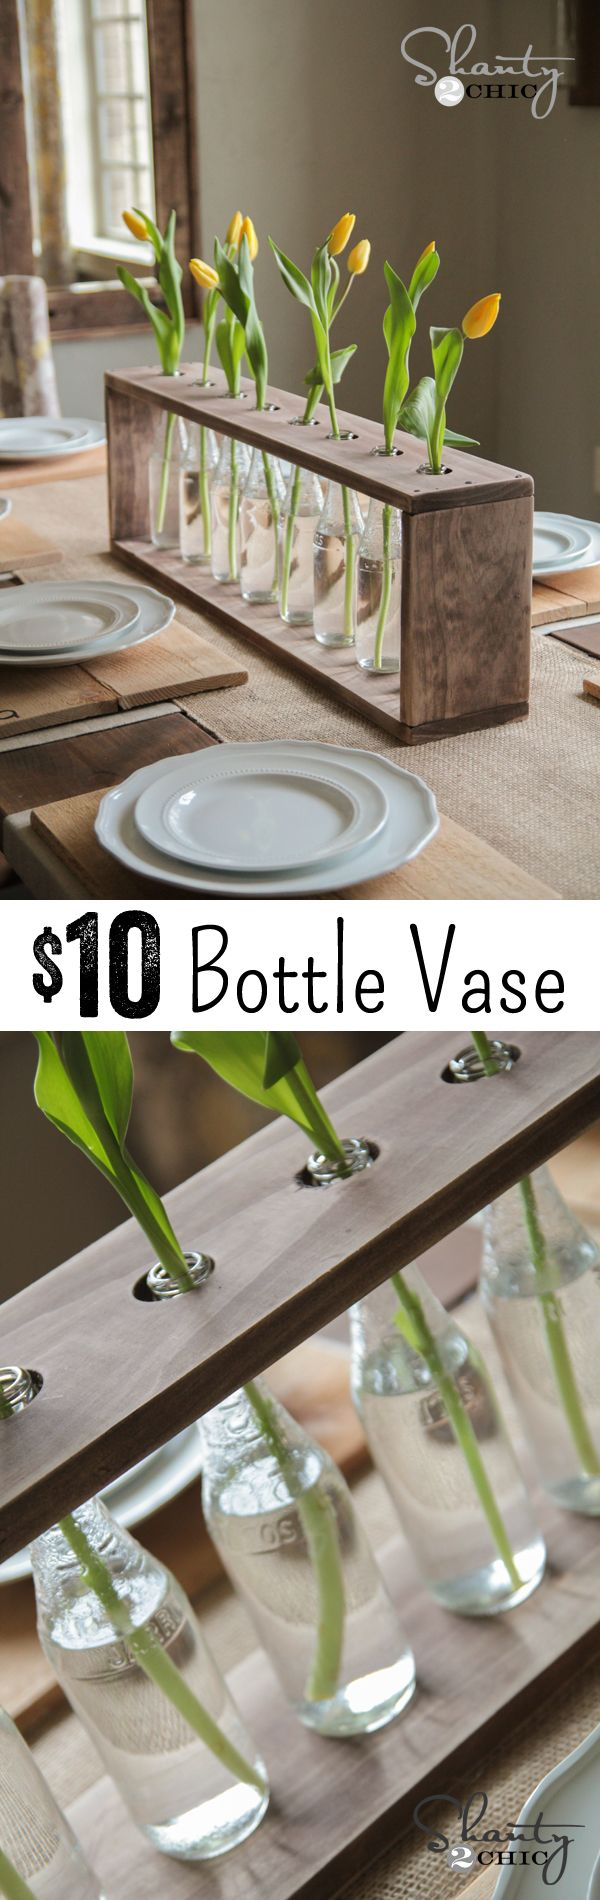 Easy DIY Bottle Vase Centerpiece.